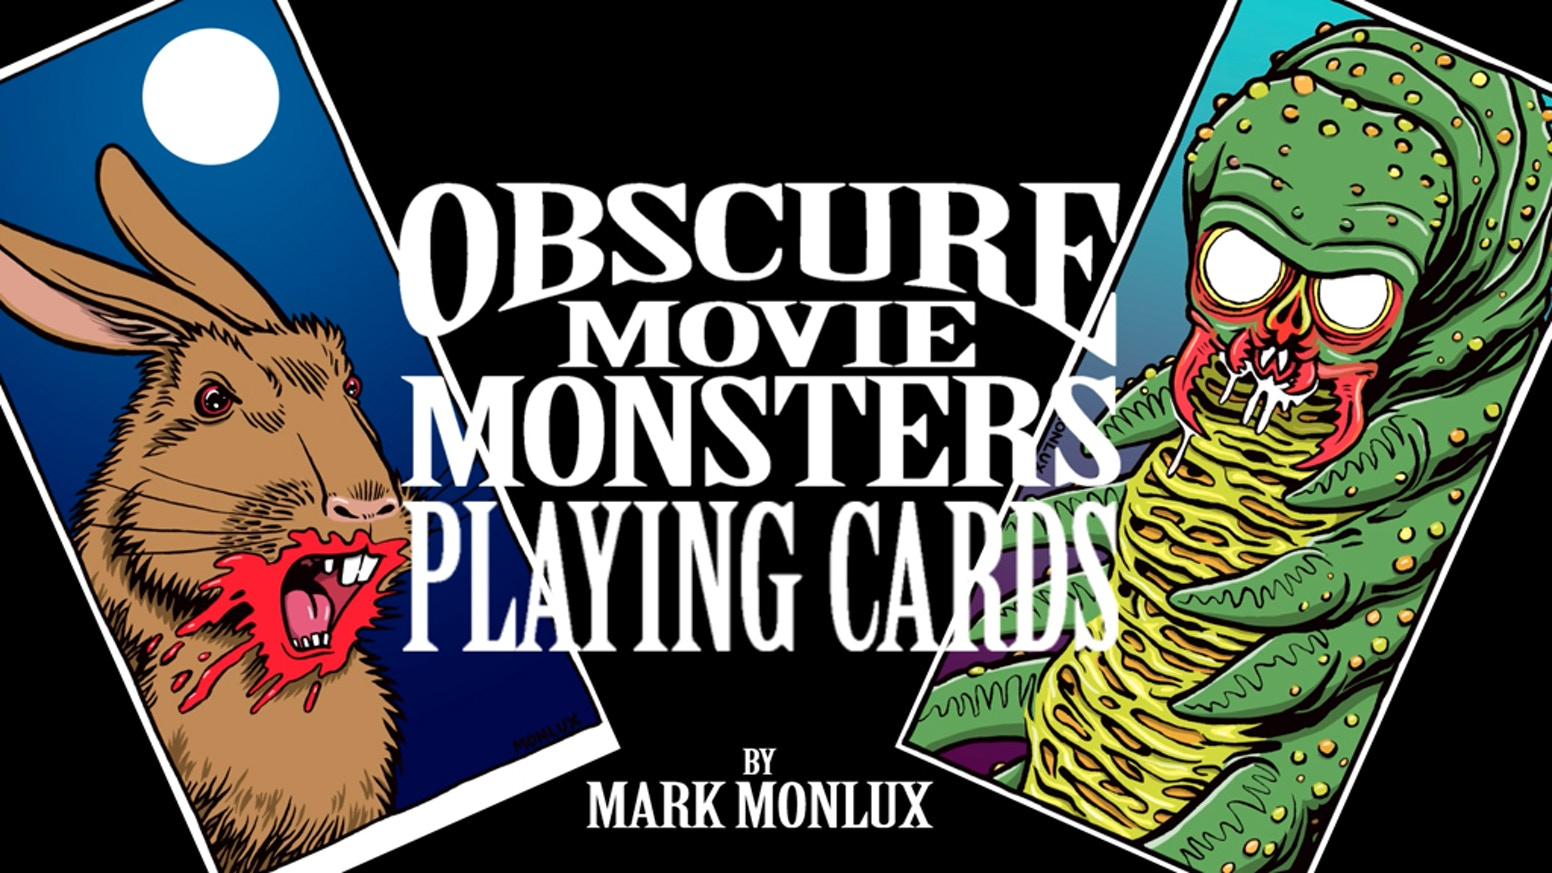 This standard poker deck features 52 original drawings of forgotten freaky foes from film. Horror movie aficionados will love it.